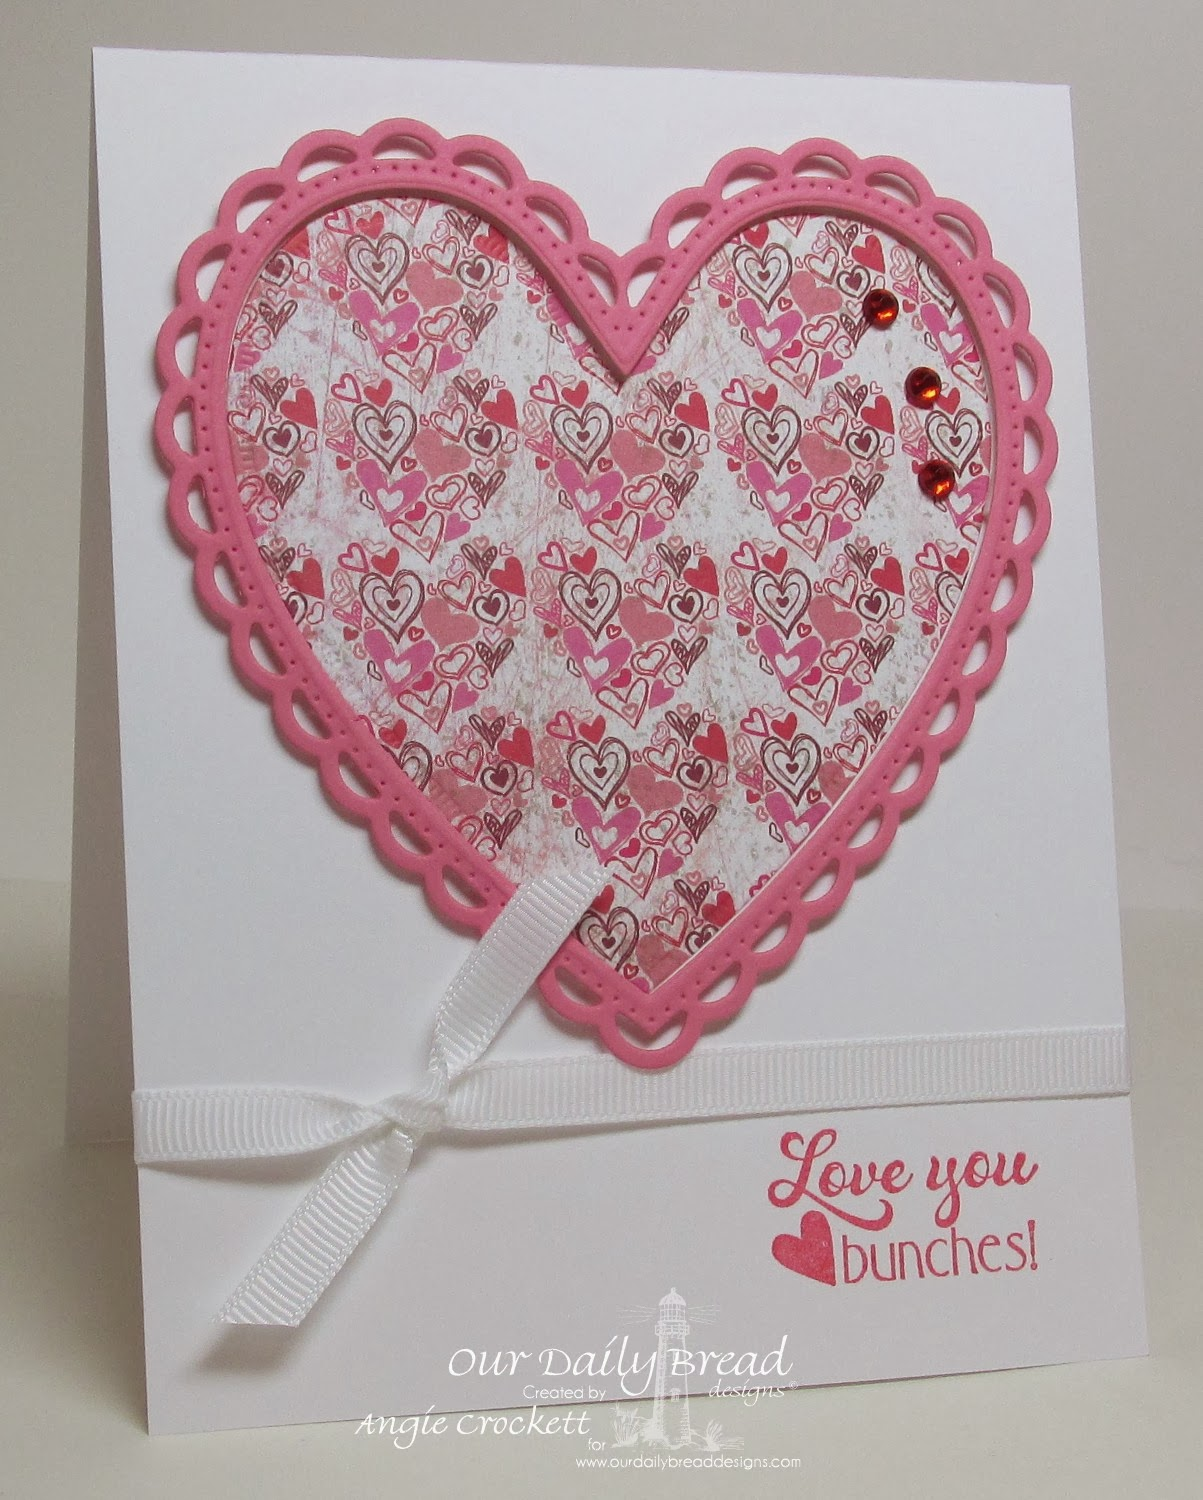 ODBD Love You Bunches, ODBD Custom Ornate Hearts Die Set, ODBD Custom Heart and Soul Designer Paper Collection, Card Designer Angie Crockett